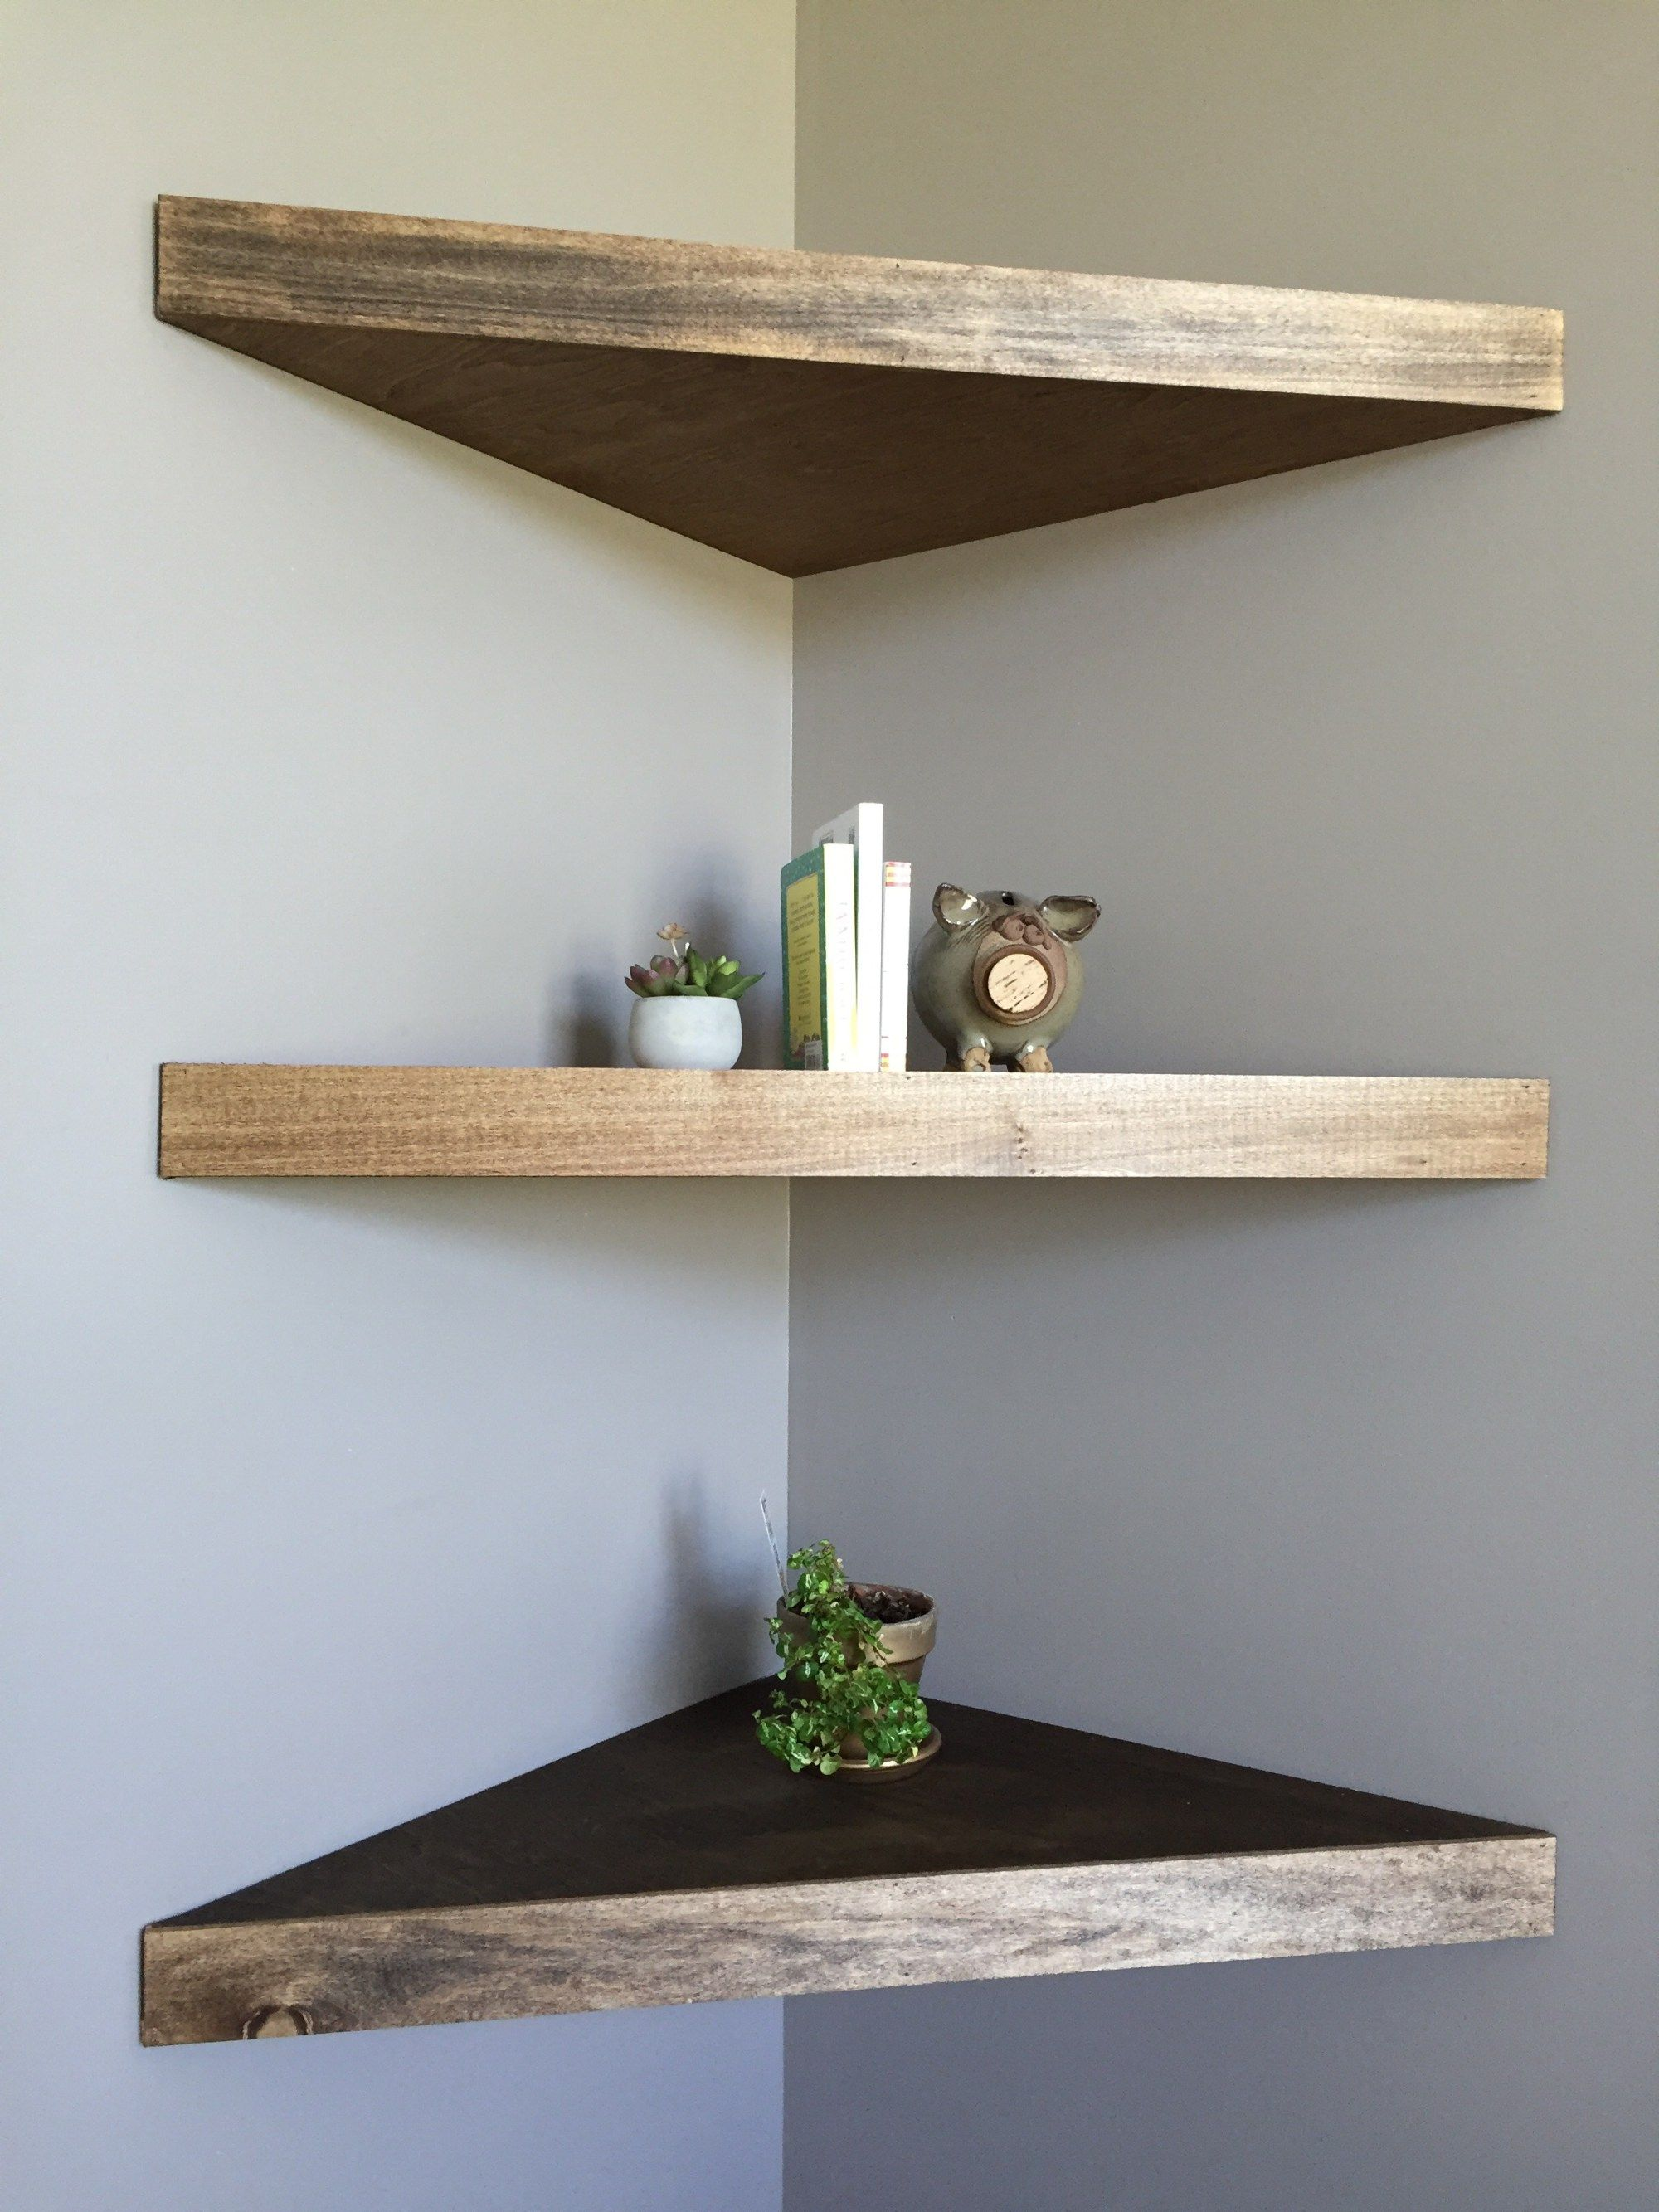 diy floating corner shelves for the home extra large shelf small wood plans rack books designs kitchen cabinet supports vanity wall bathroom storage ideas cool adirondack bar